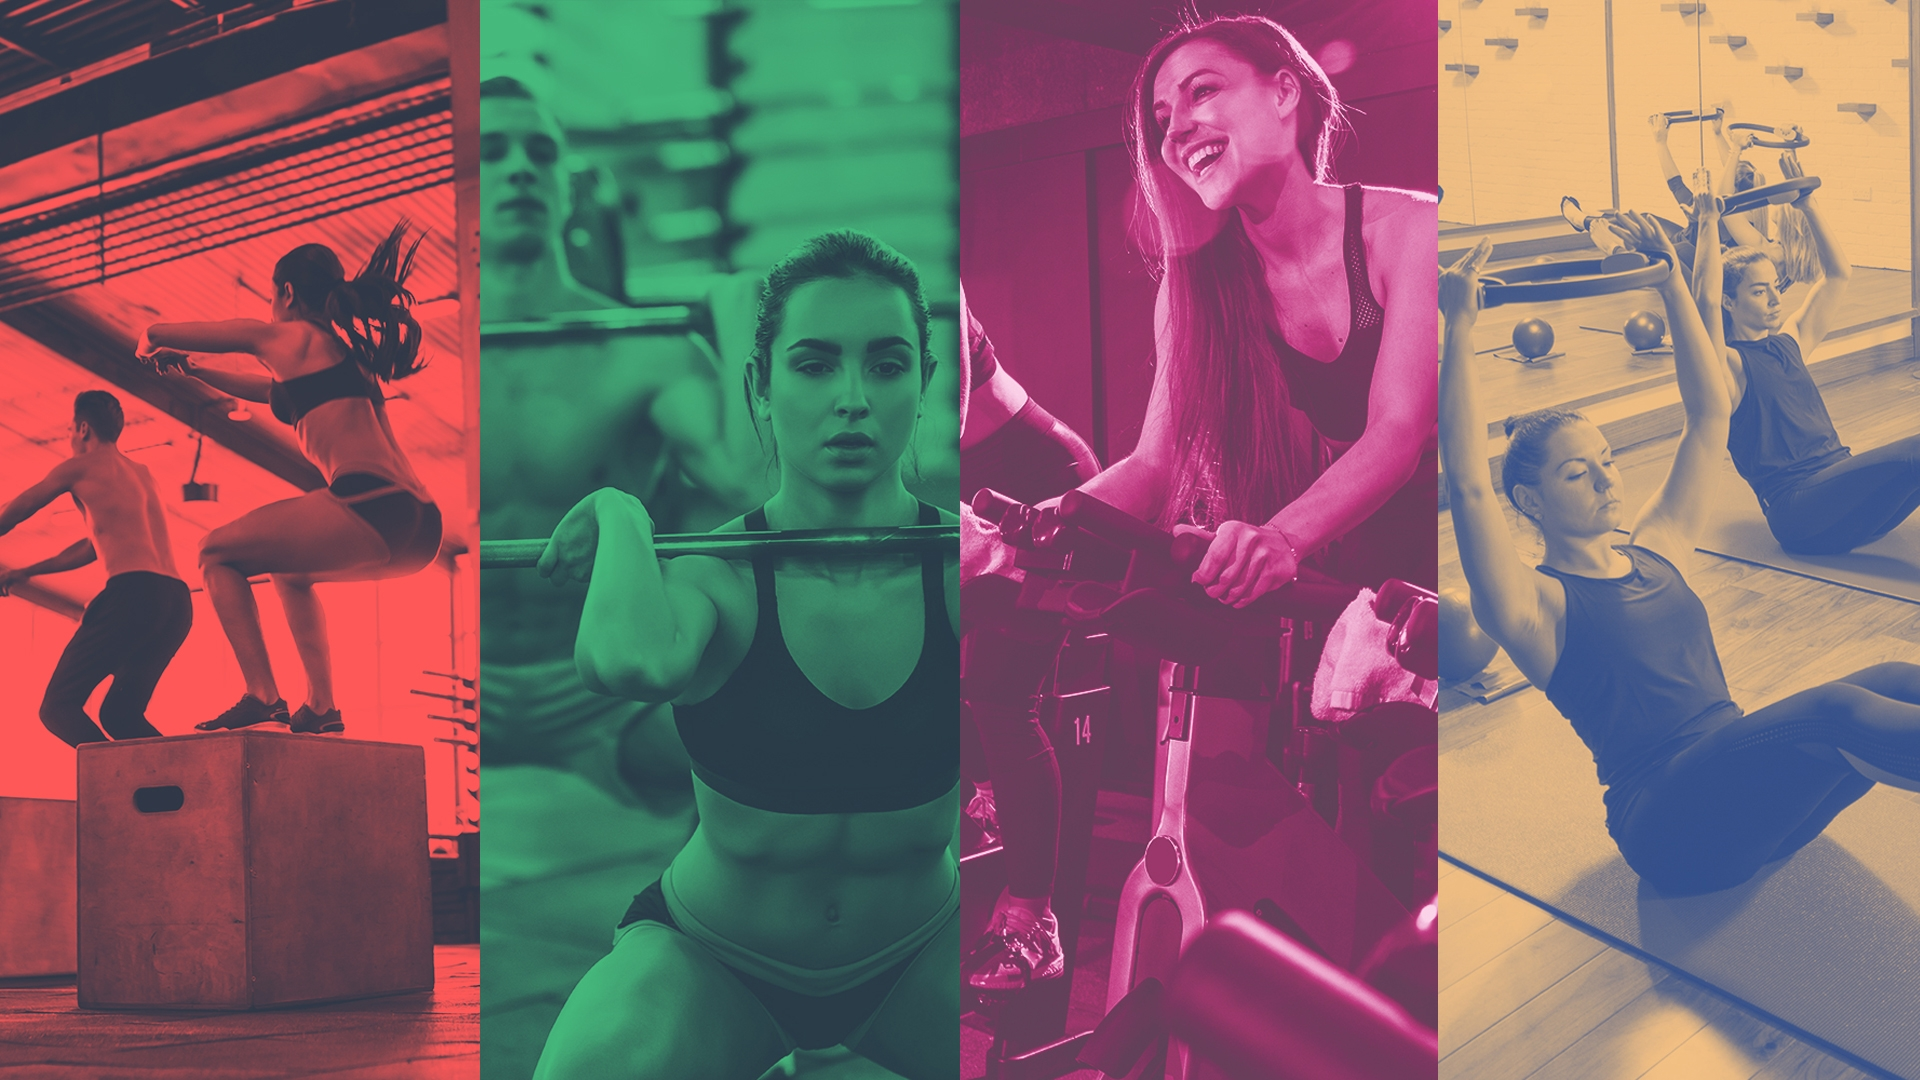 Group Fitness Playlists